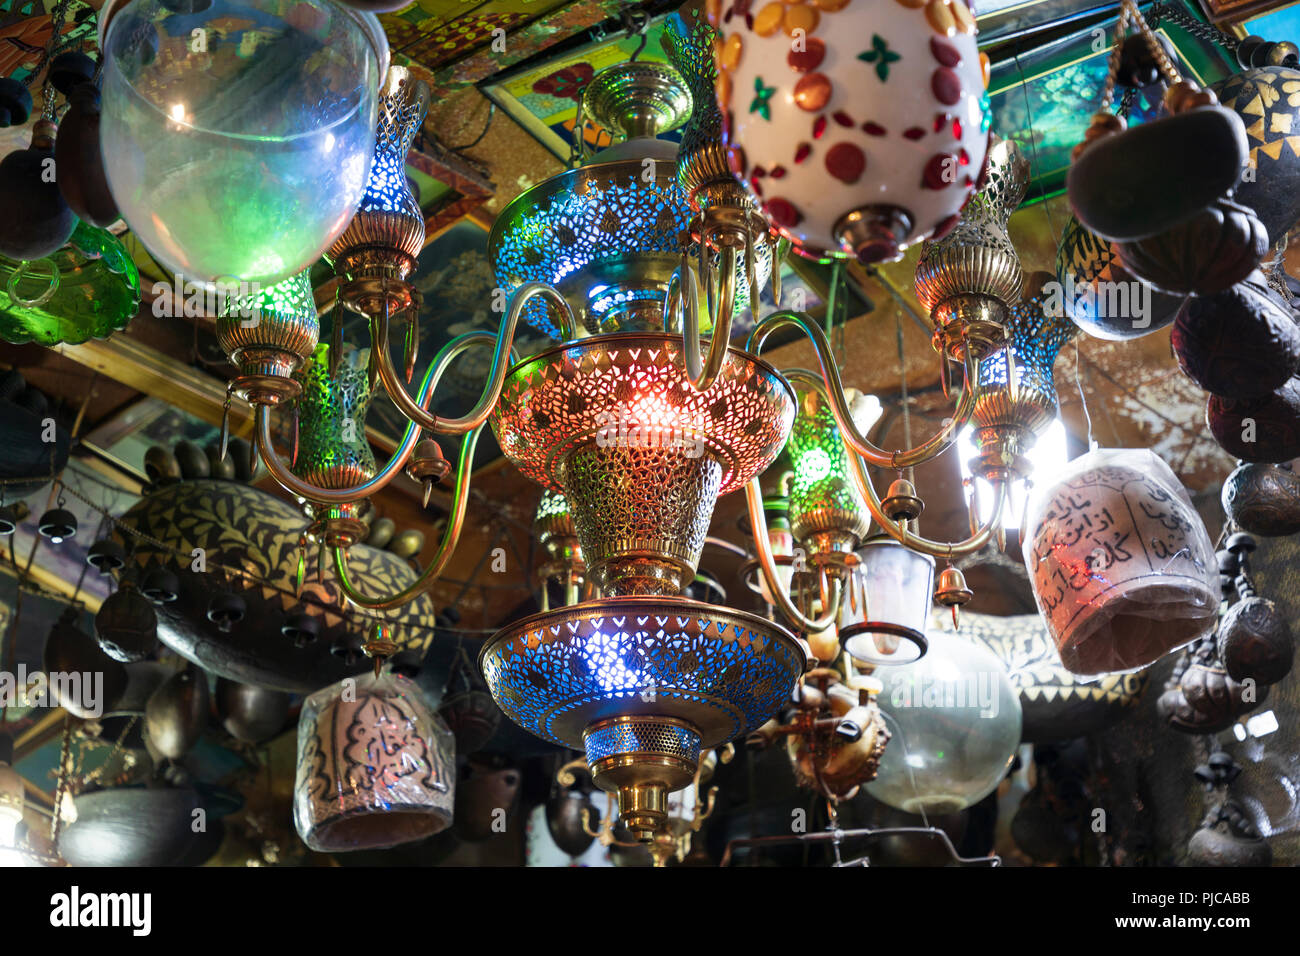 Islamic Republic Of Iran Isfahan Bazaar Stained Glass Light